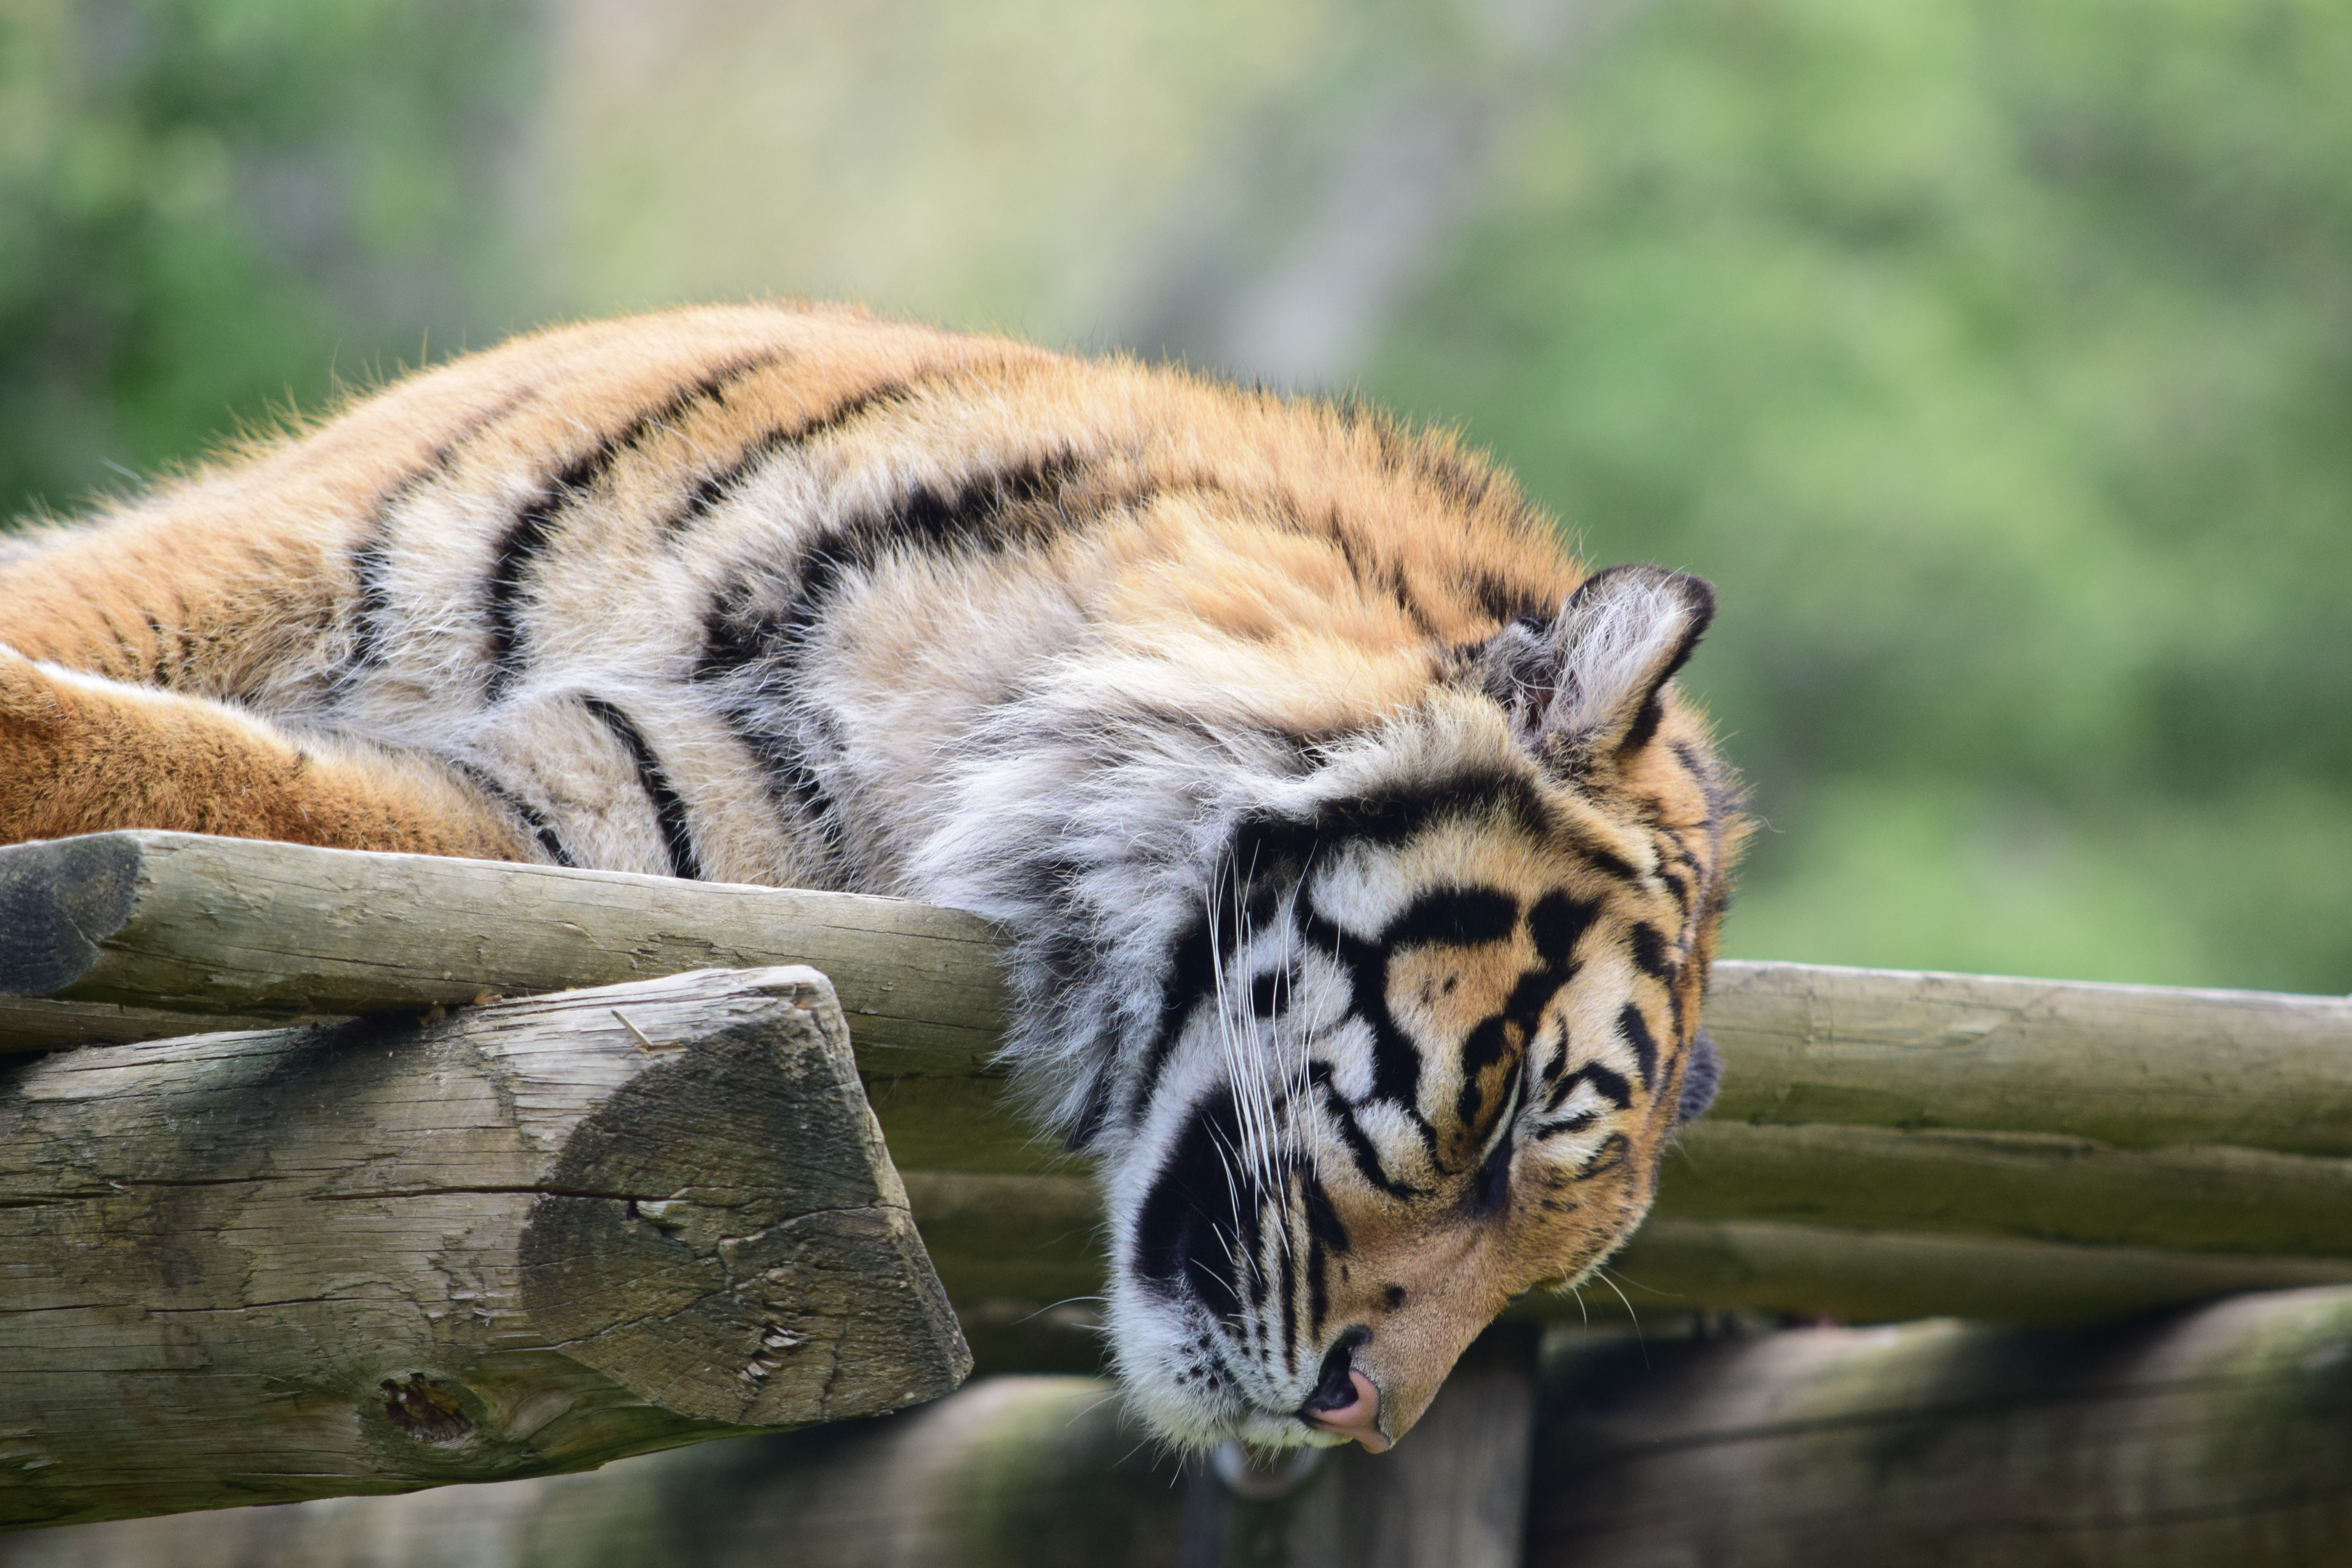 tiger_muzzle_sleep_predator_114859_6000x4000